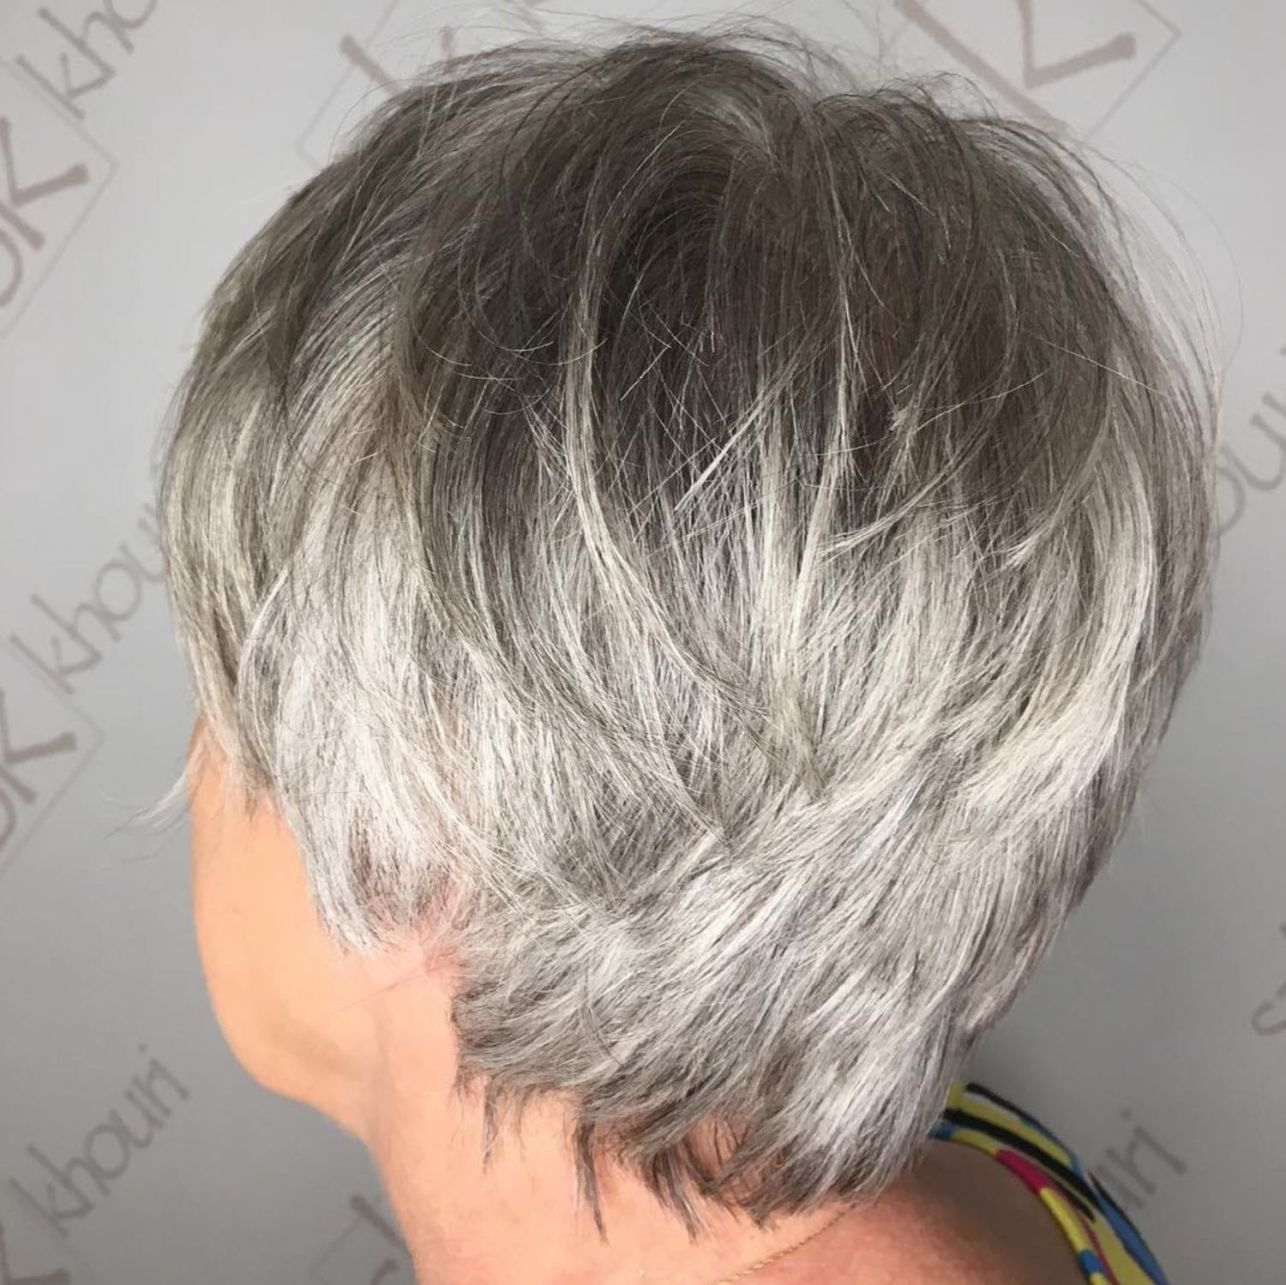 60 gorgeous gray hair styles in 2019 | hairstyles for seniors | grey